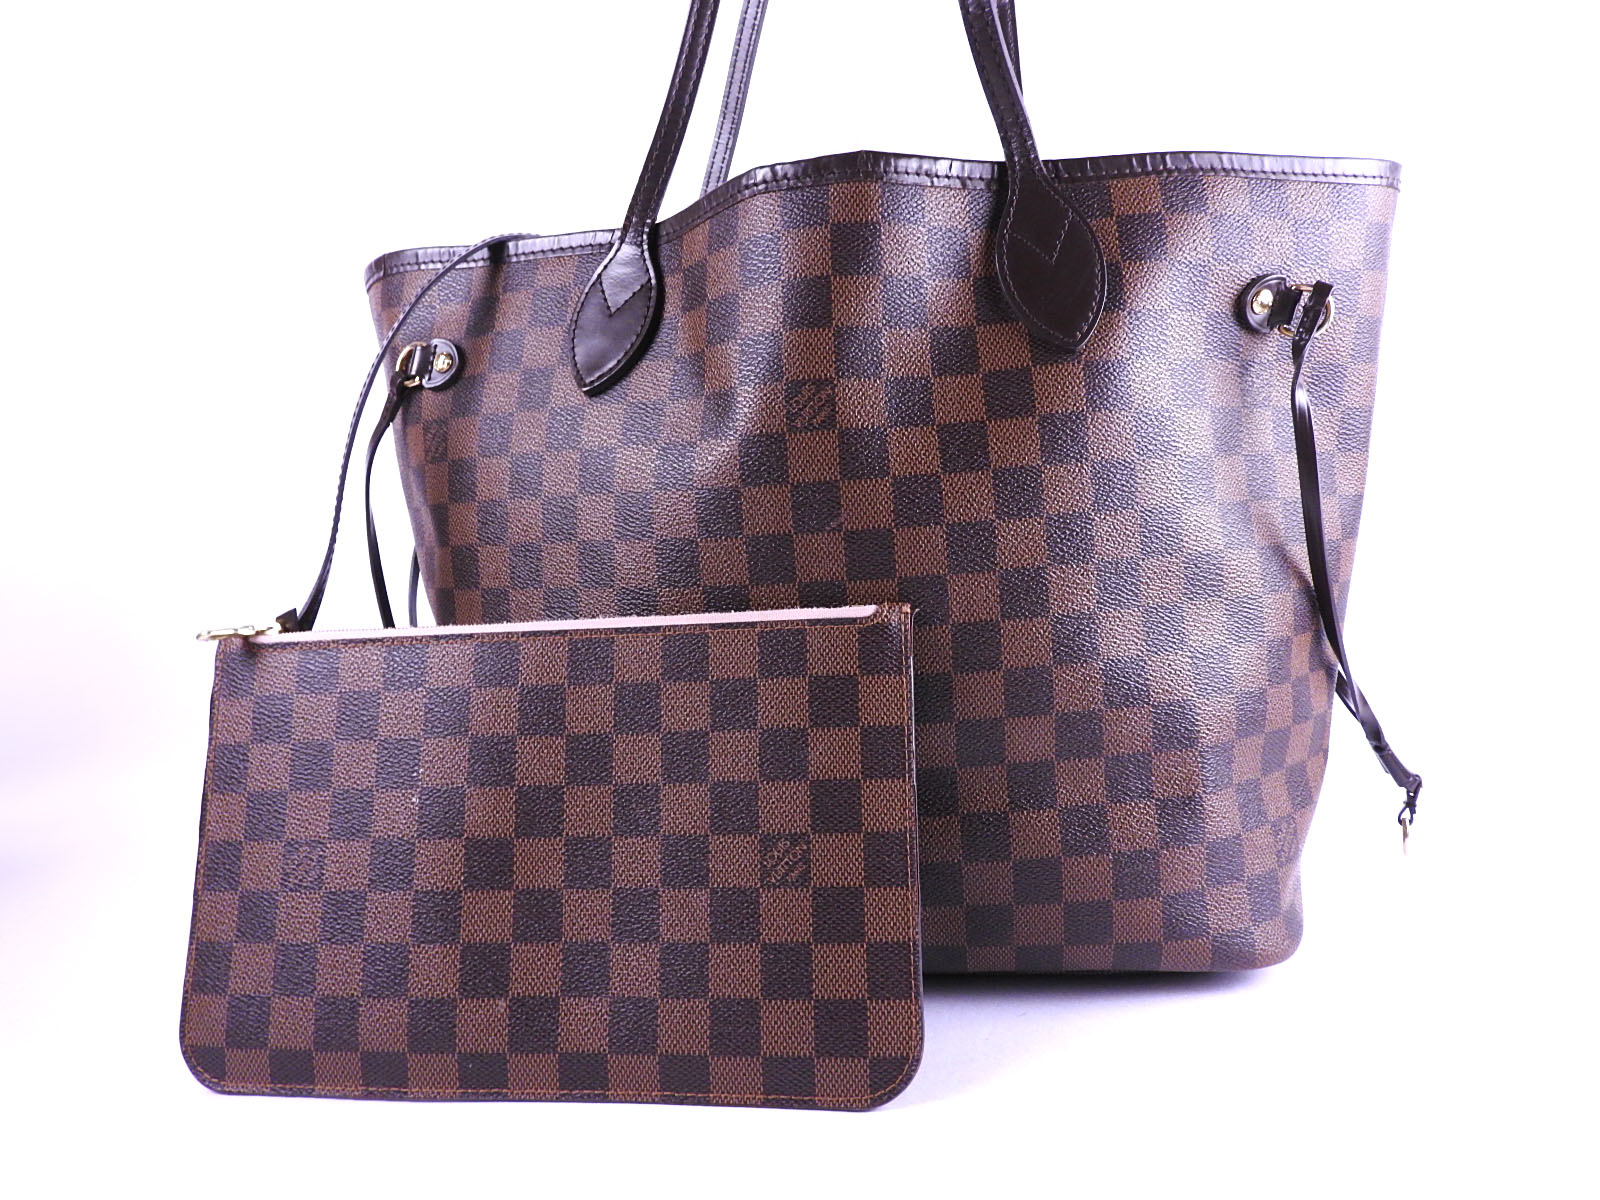 Auth LOUIS VUITTON Neverfull MM Damier Ebene Shoulder Tote Bag With Pouch  Rose Ballerine N41603 A-9132 5dfdfa3ea6638